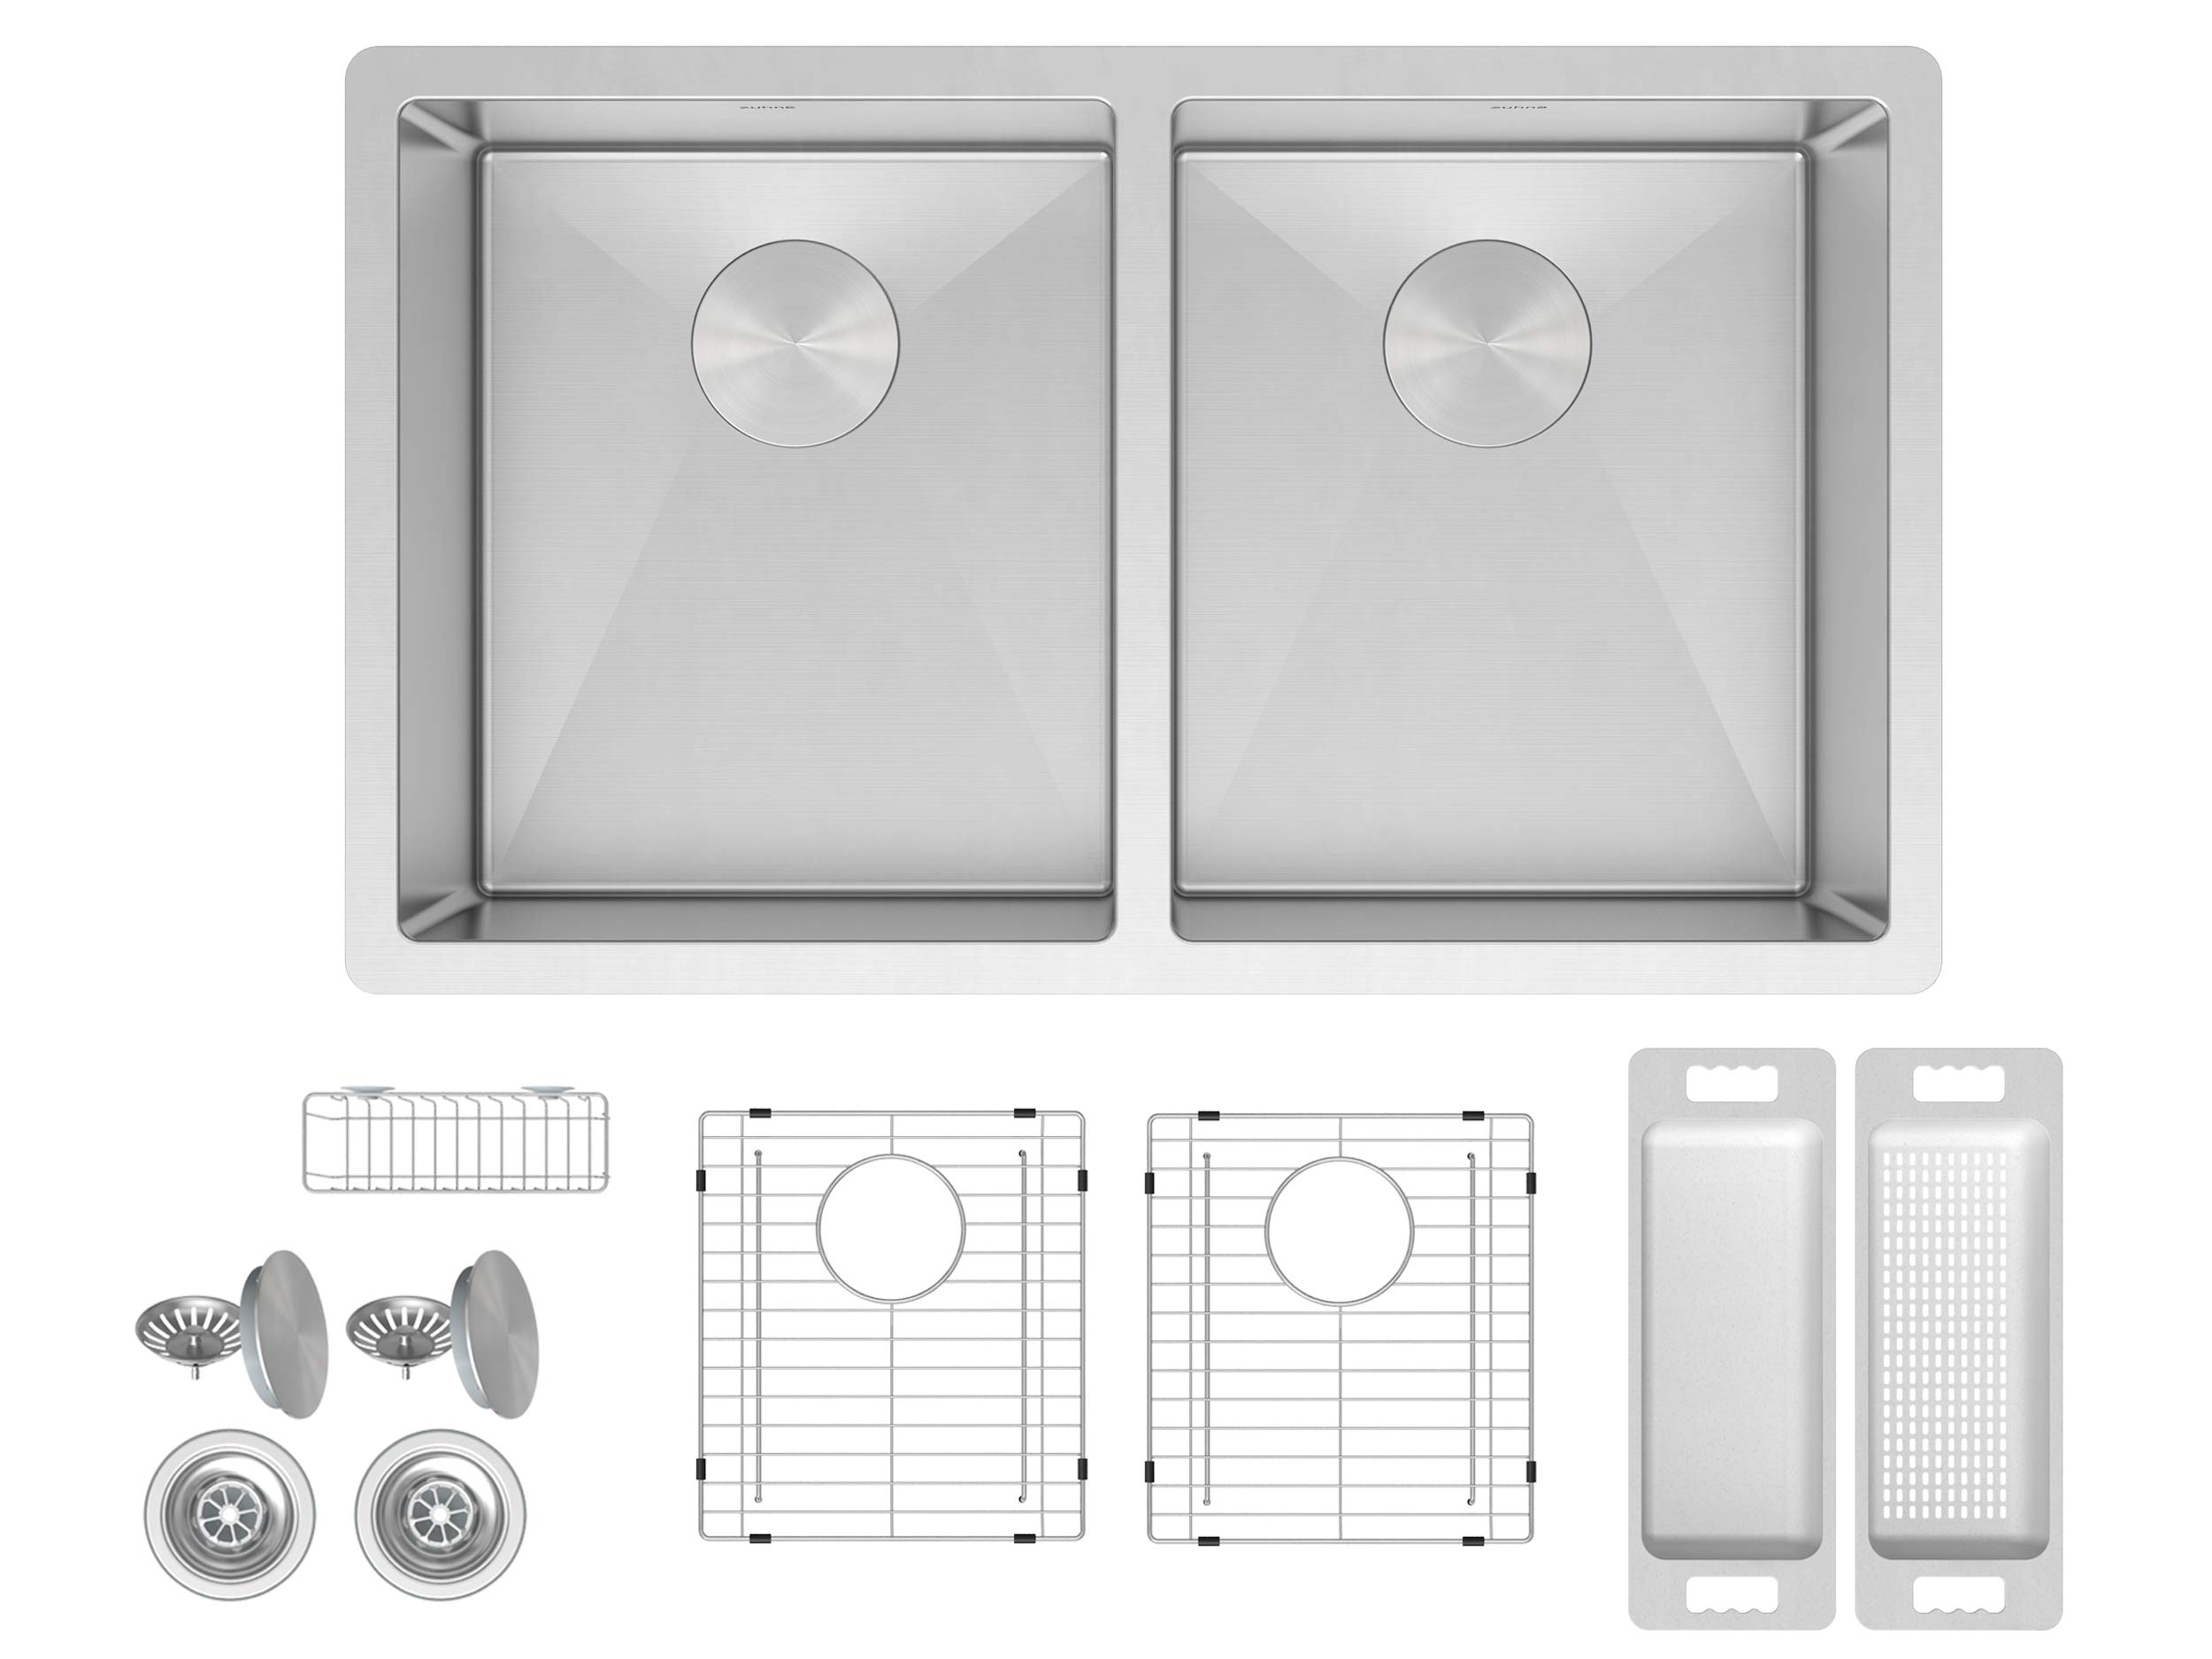 ZUHNE 32 Inch Double Bowl Under Mount 16 Gauge Stainless Kitchen Sink for 36 Inch Cabinet (50/50) by Zuhne